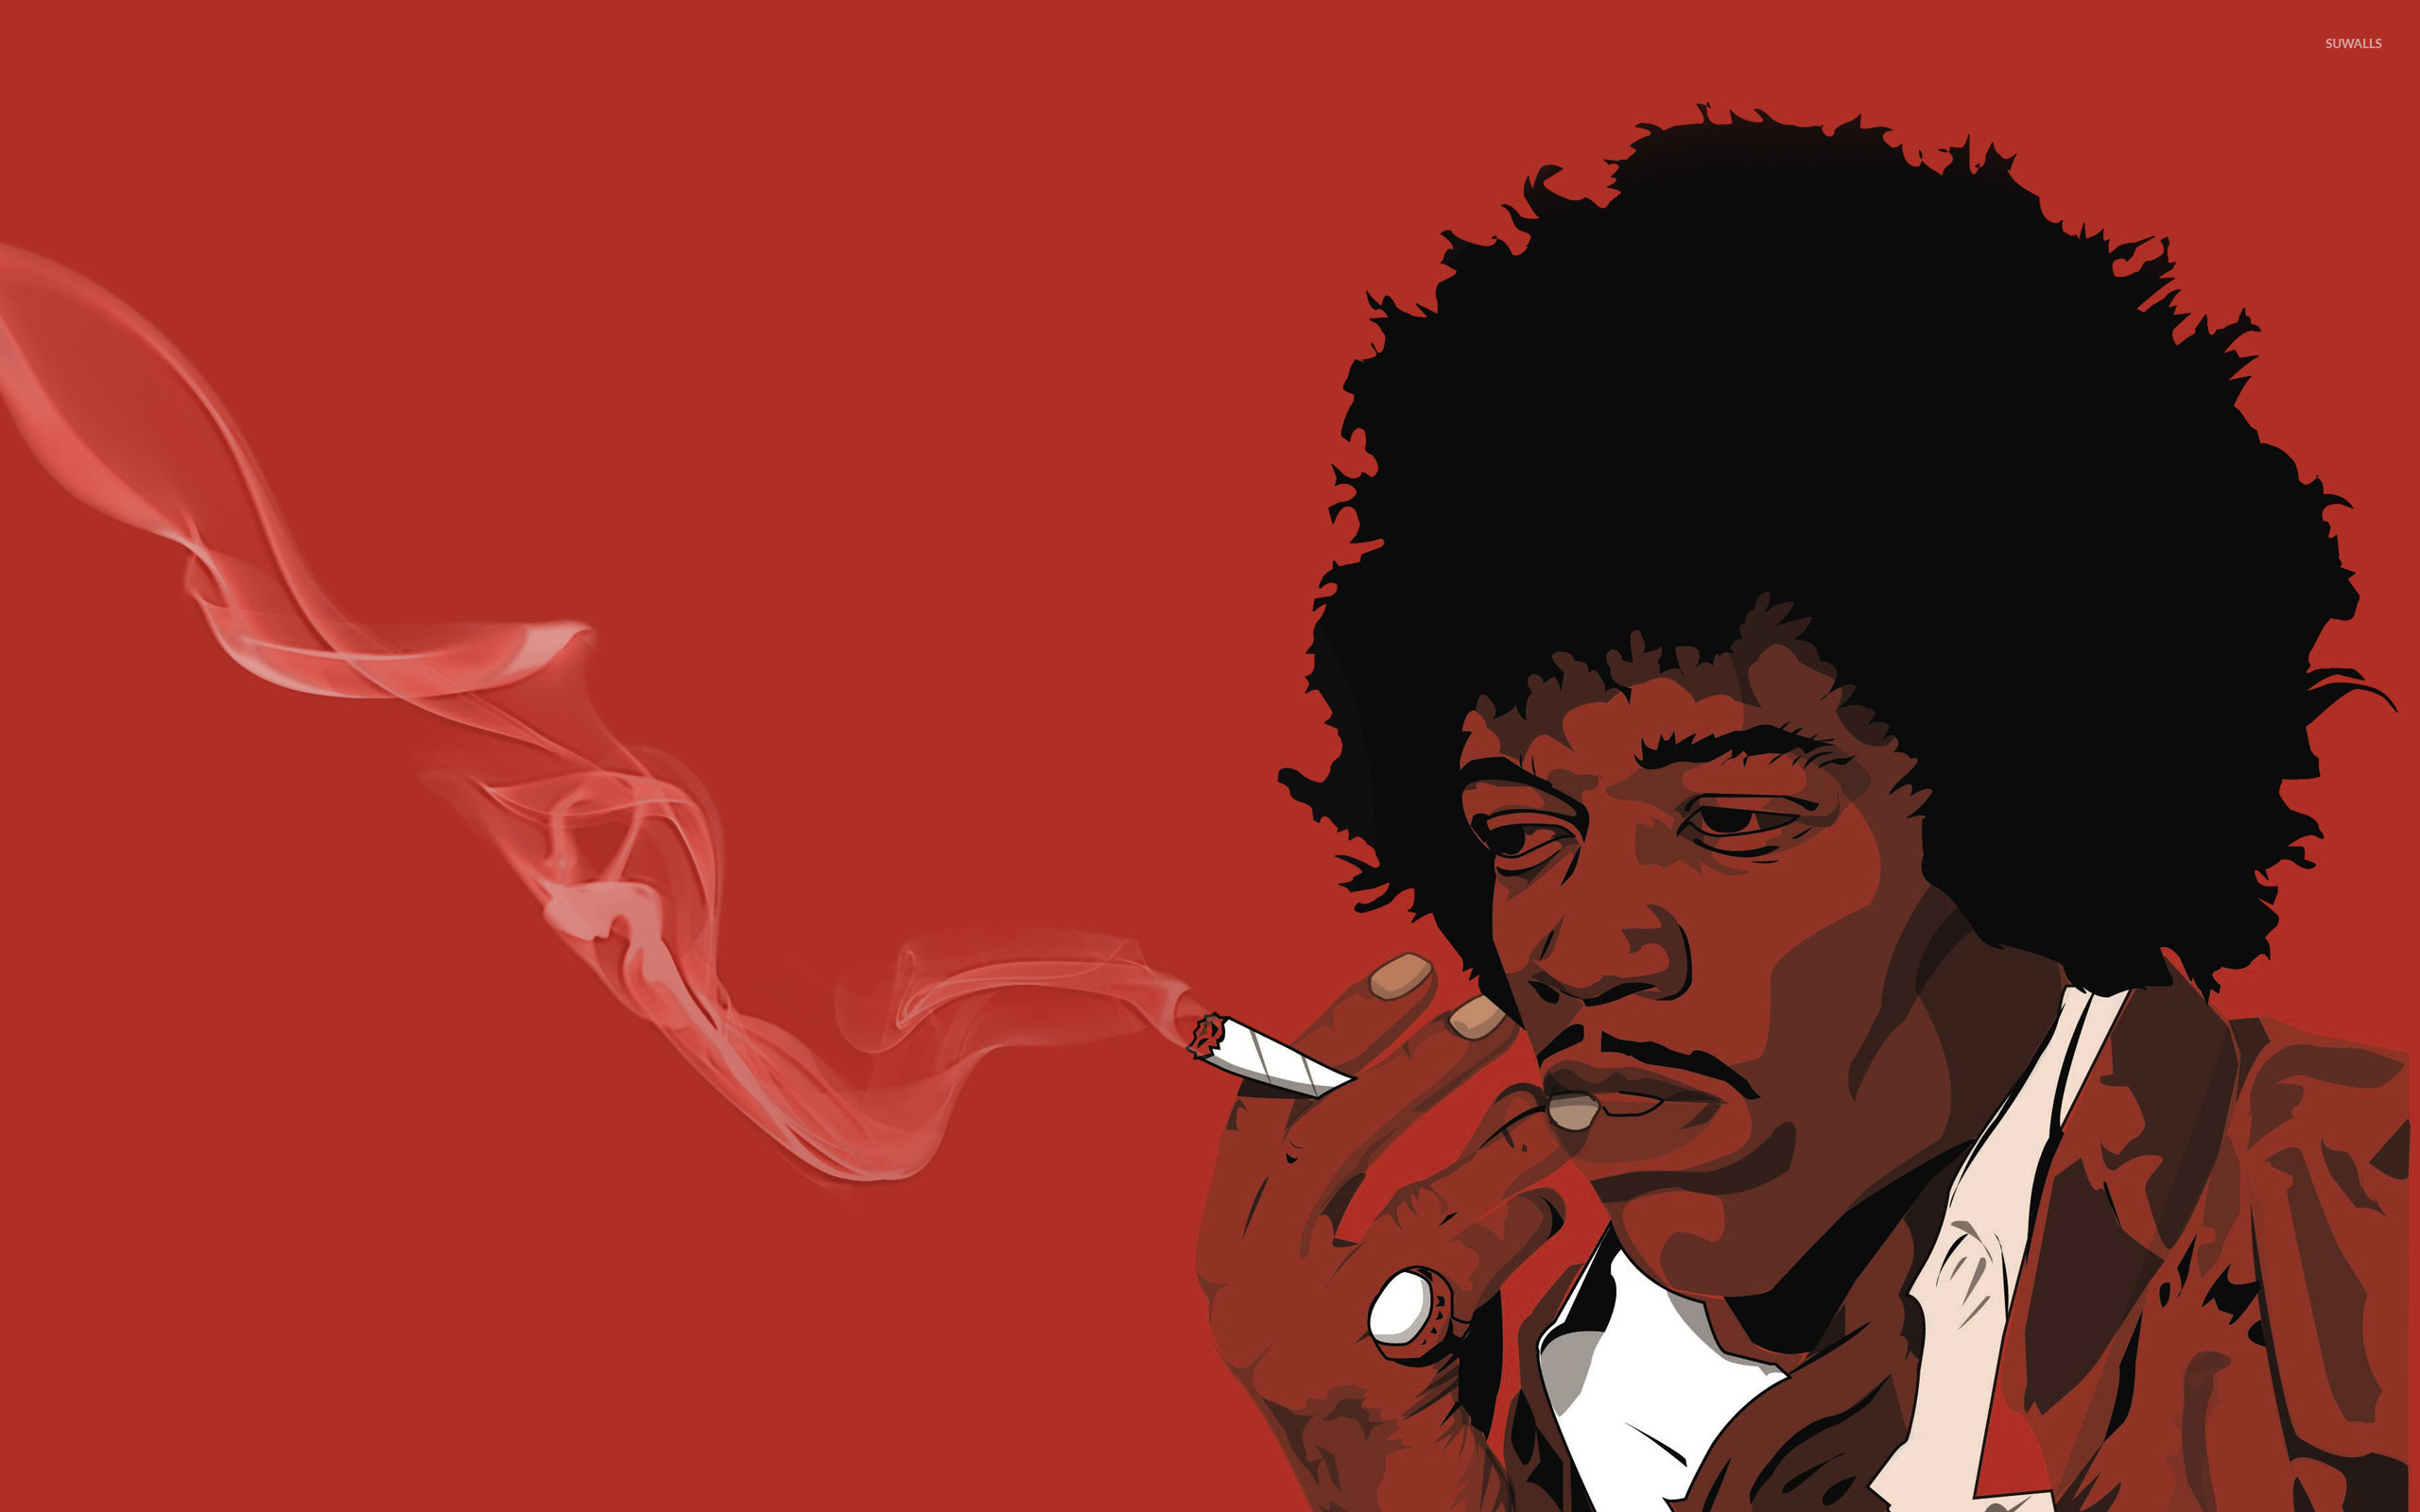 jimi hendrix wallpaper 10 - photo #48